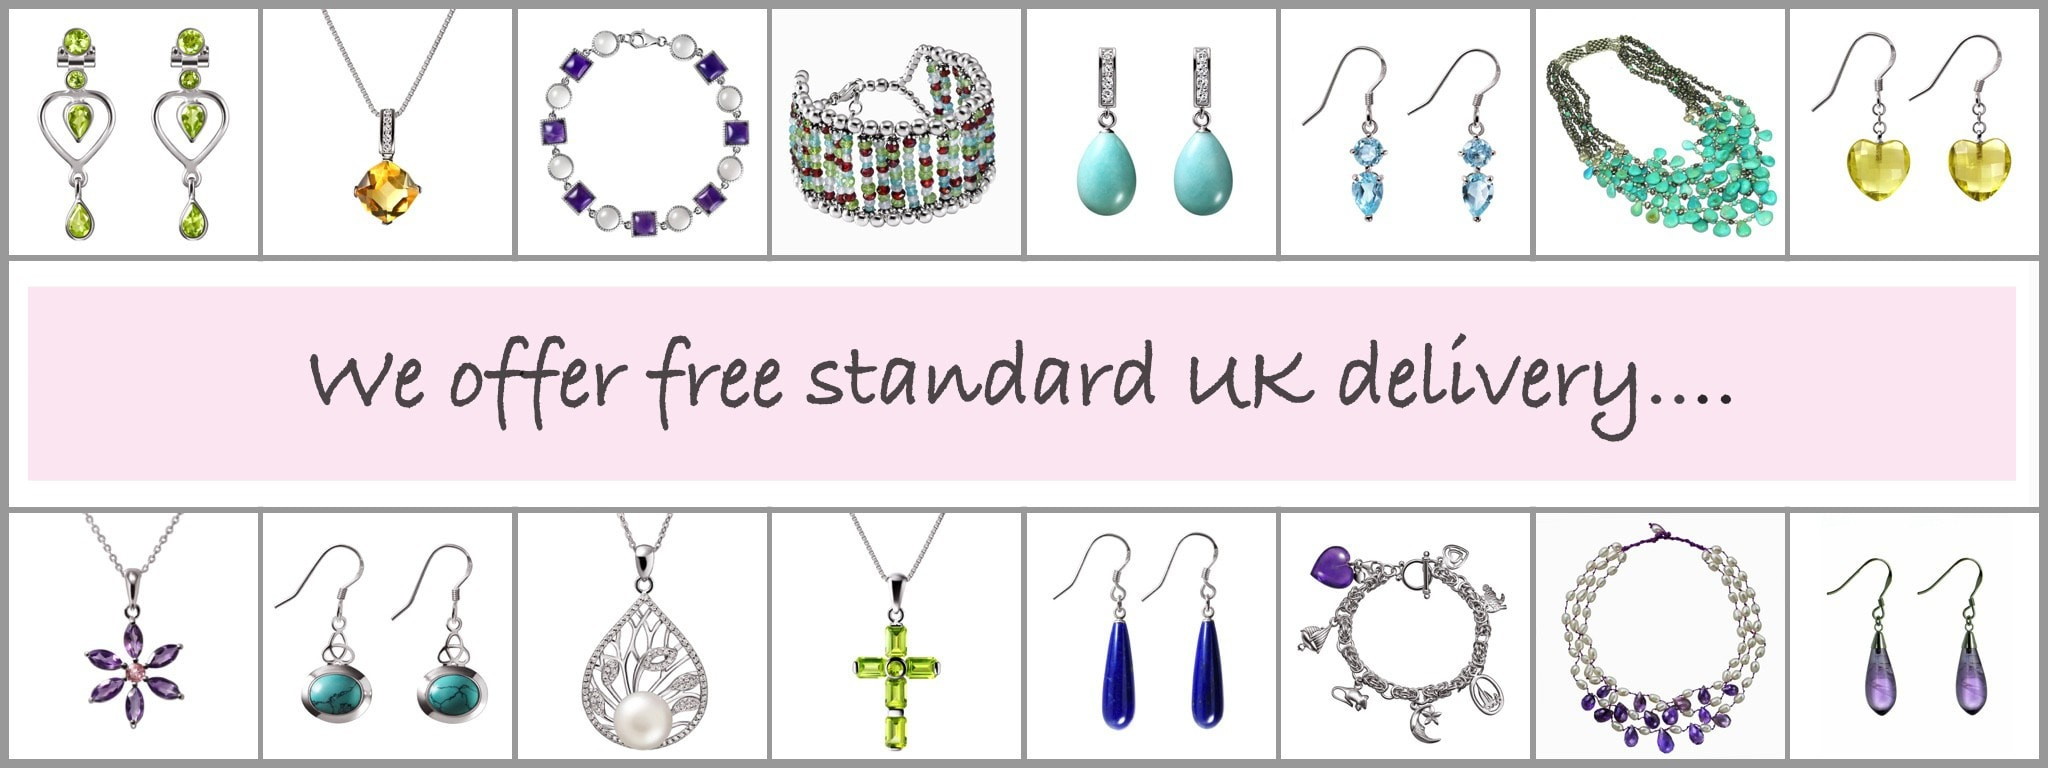 Franki Baker offers free UK delivery